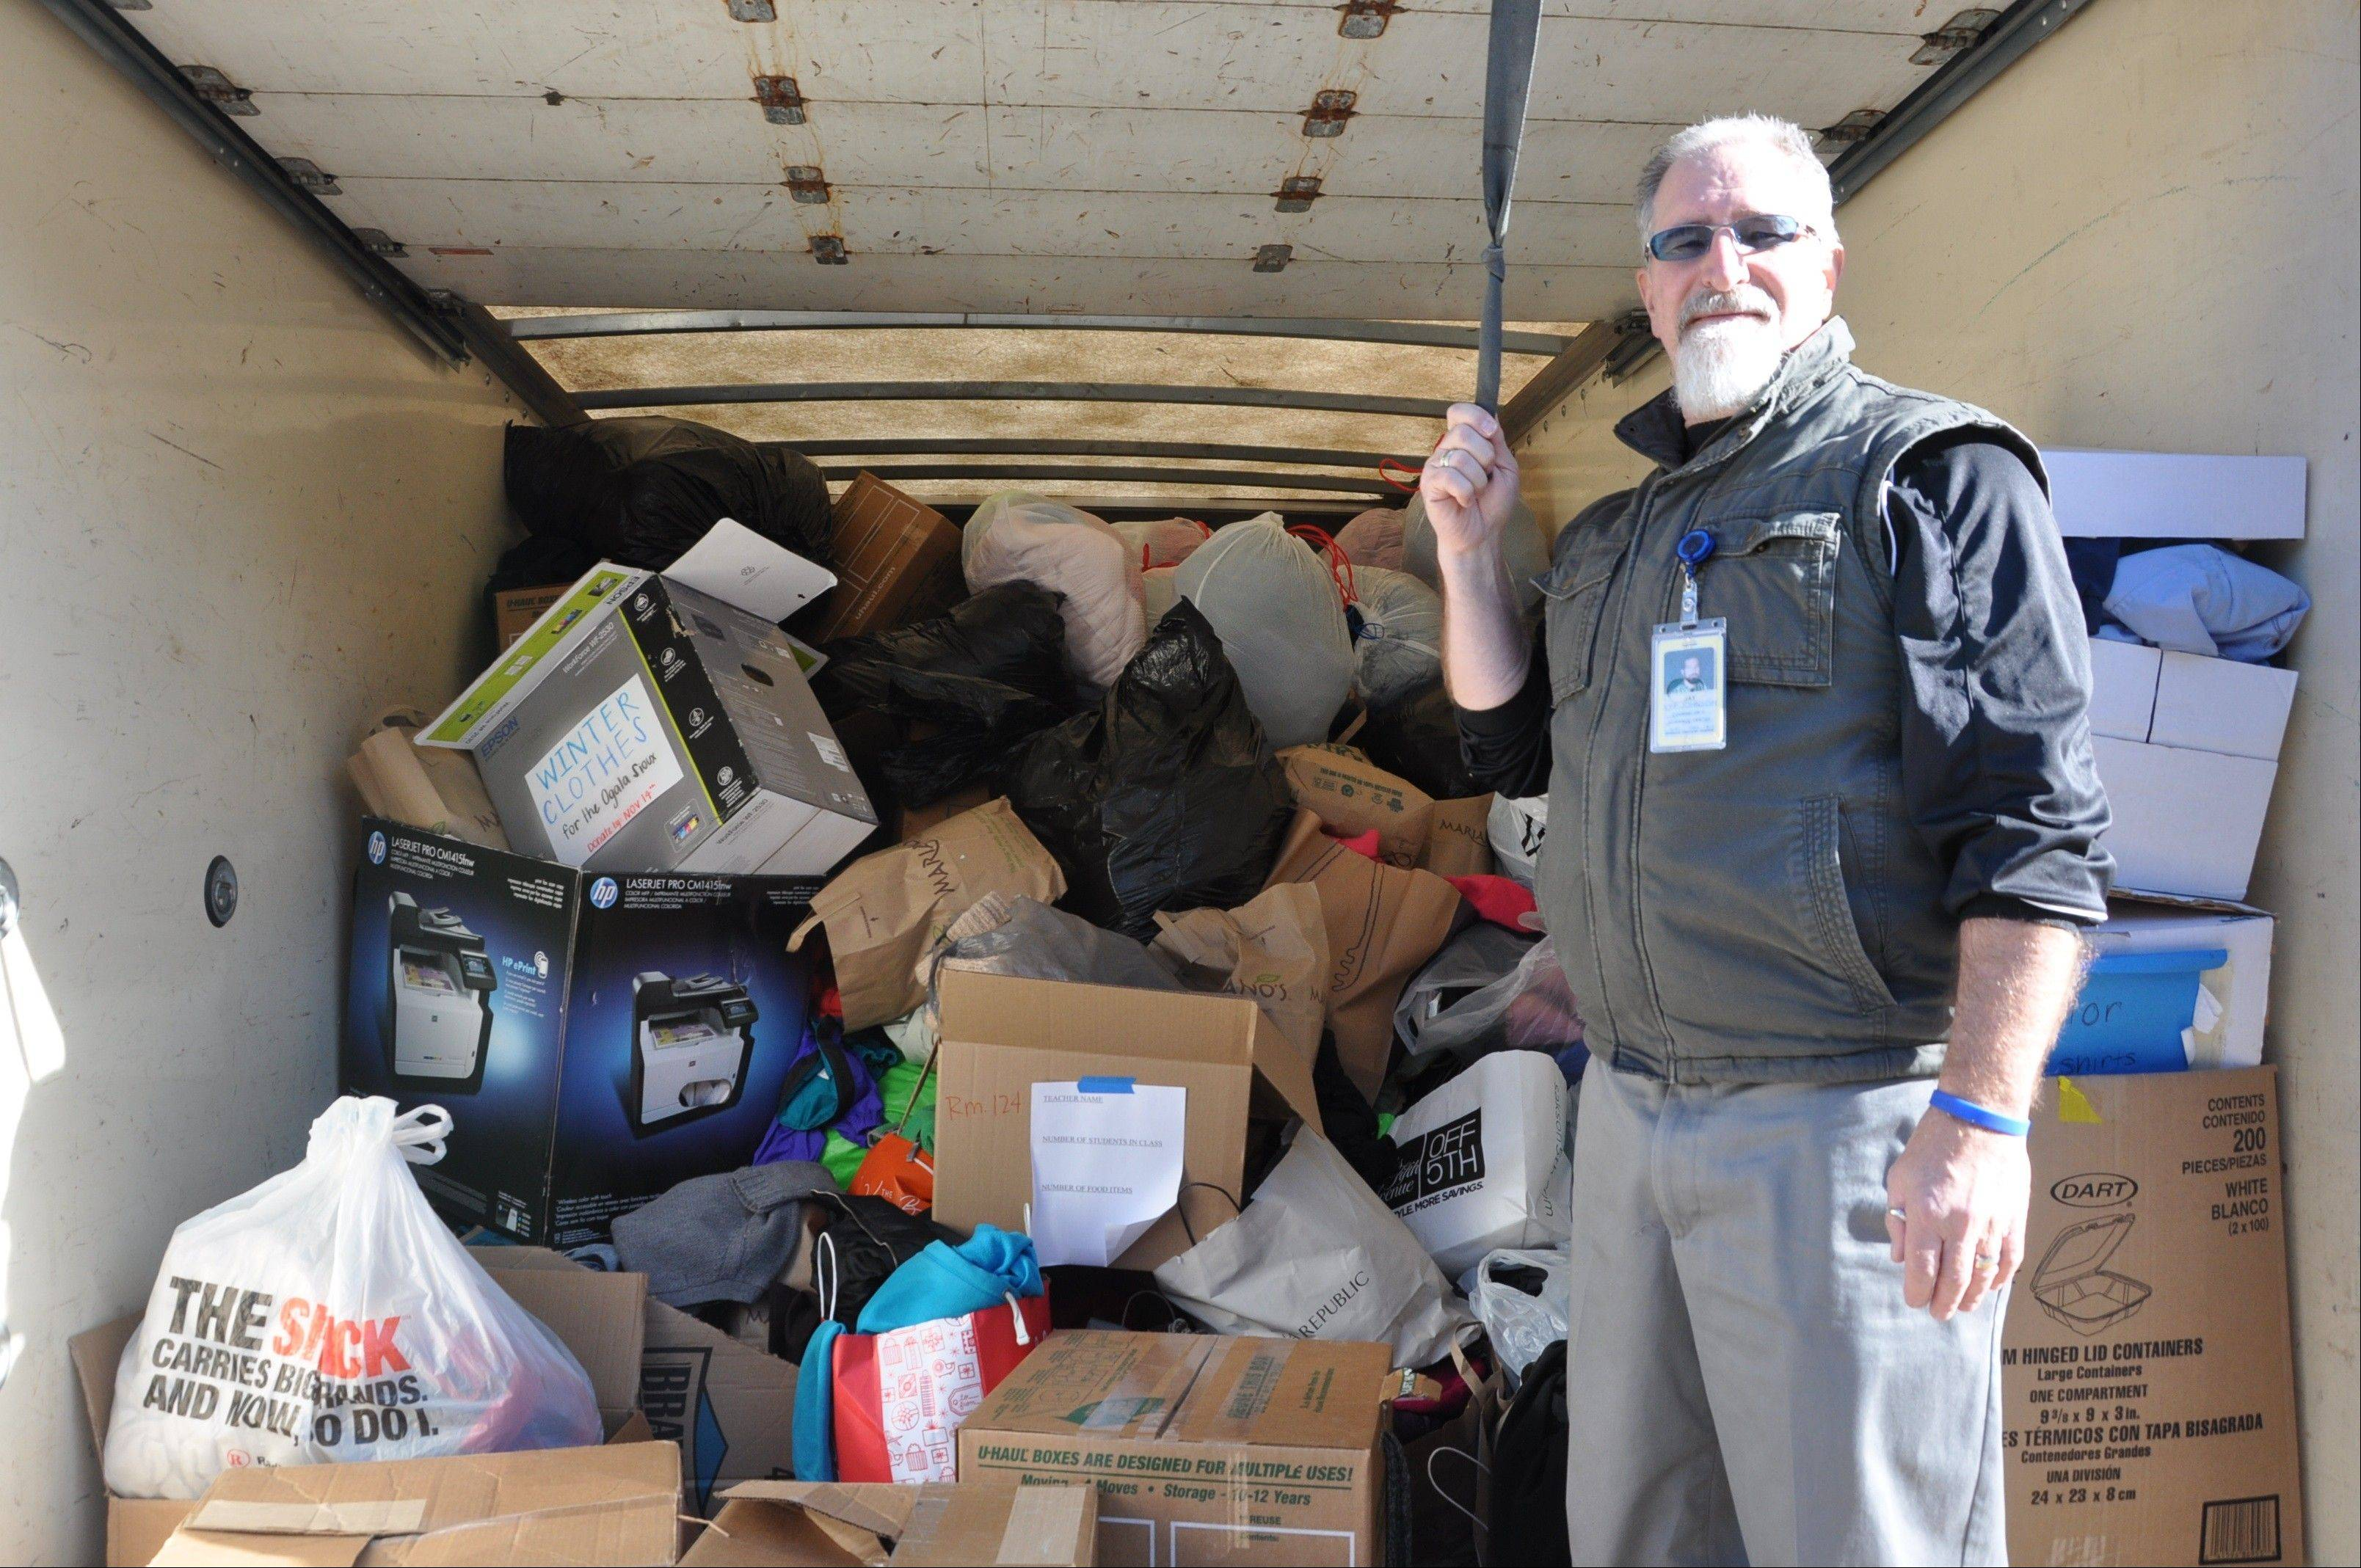 Prospect High School Knights' Way sponsor Jay Kyp-Johnson shows the truckload of donations headed to the Native American reservation in South Dakota.